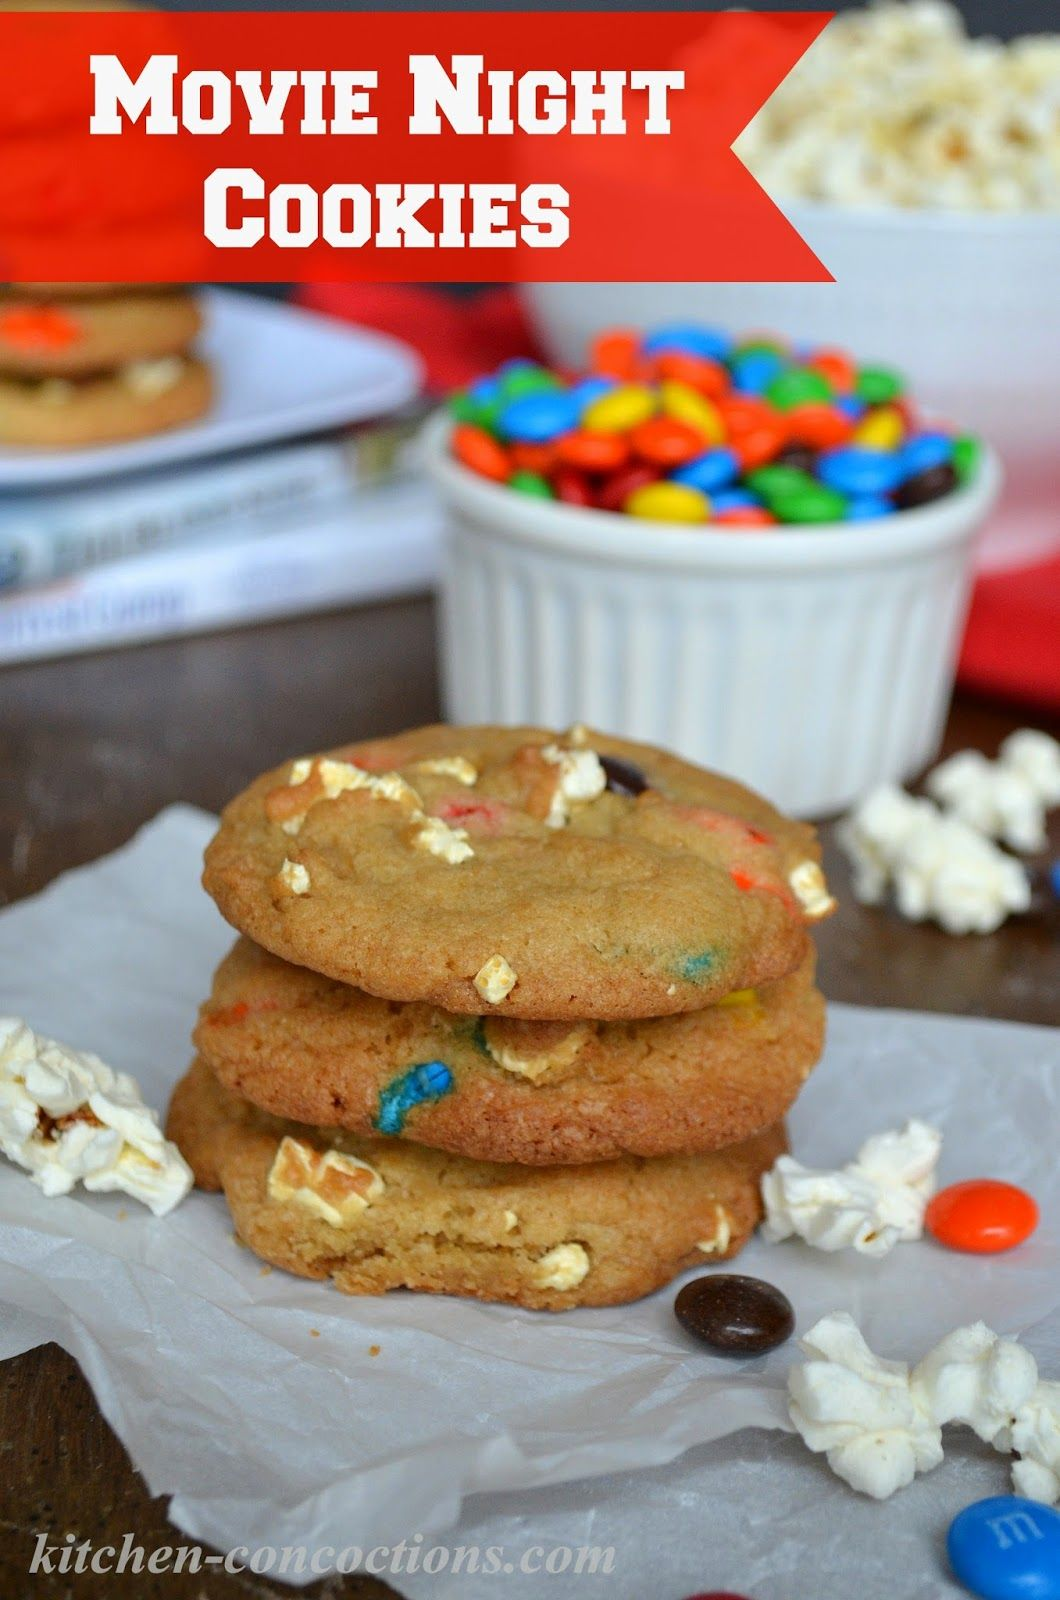 Movie Night Popcorn & M&M's Cookies {Plus Movie Night Gift Baskets} - Kitchen Concoctions